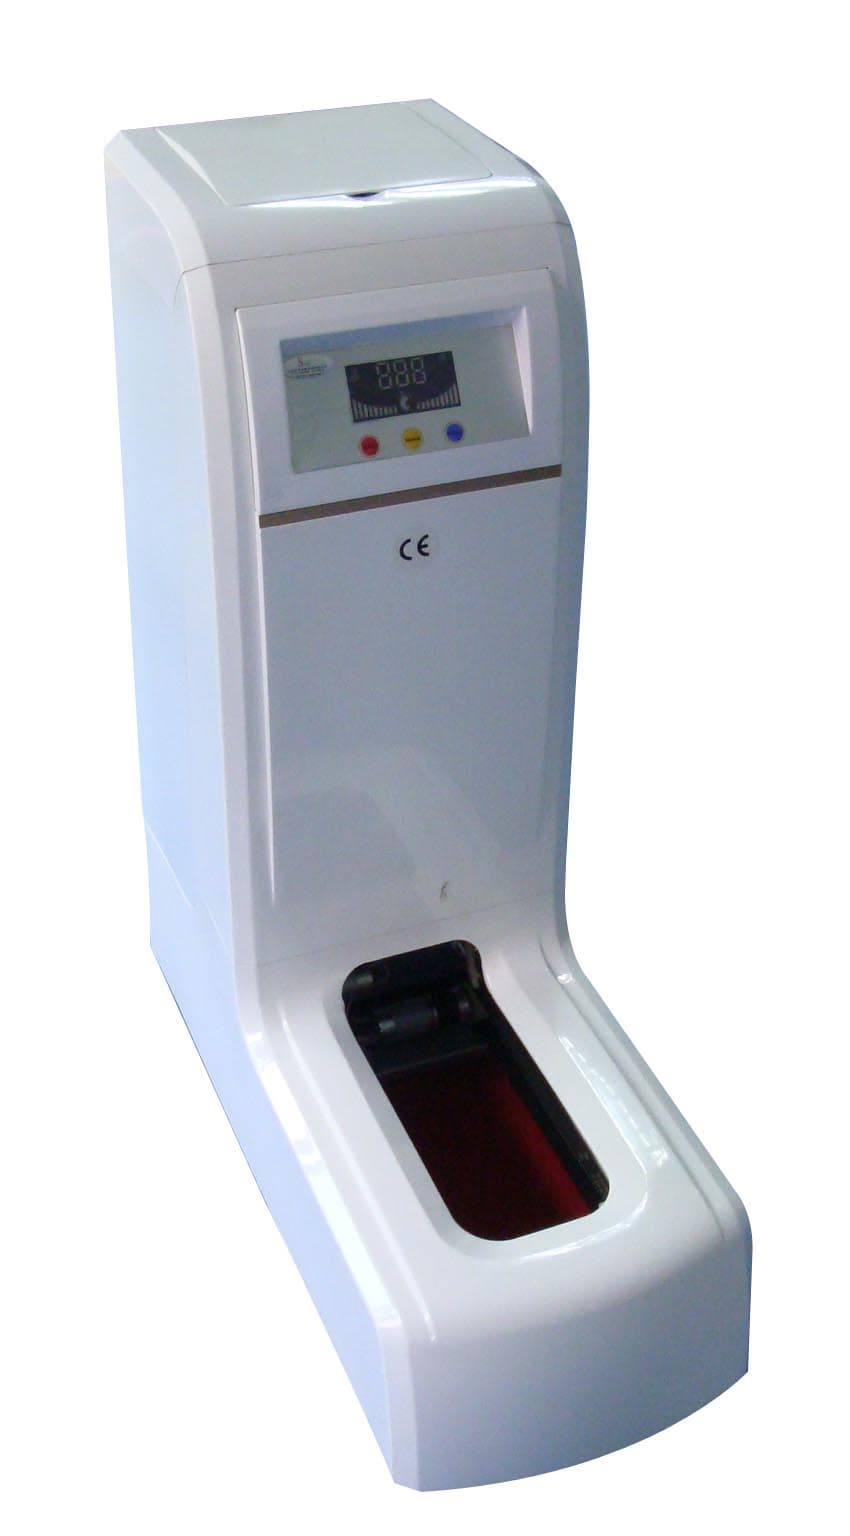 Automatic Shoe Cover Dispenser ~ Automatic shoe cover dispenser from shenzhen sikerma